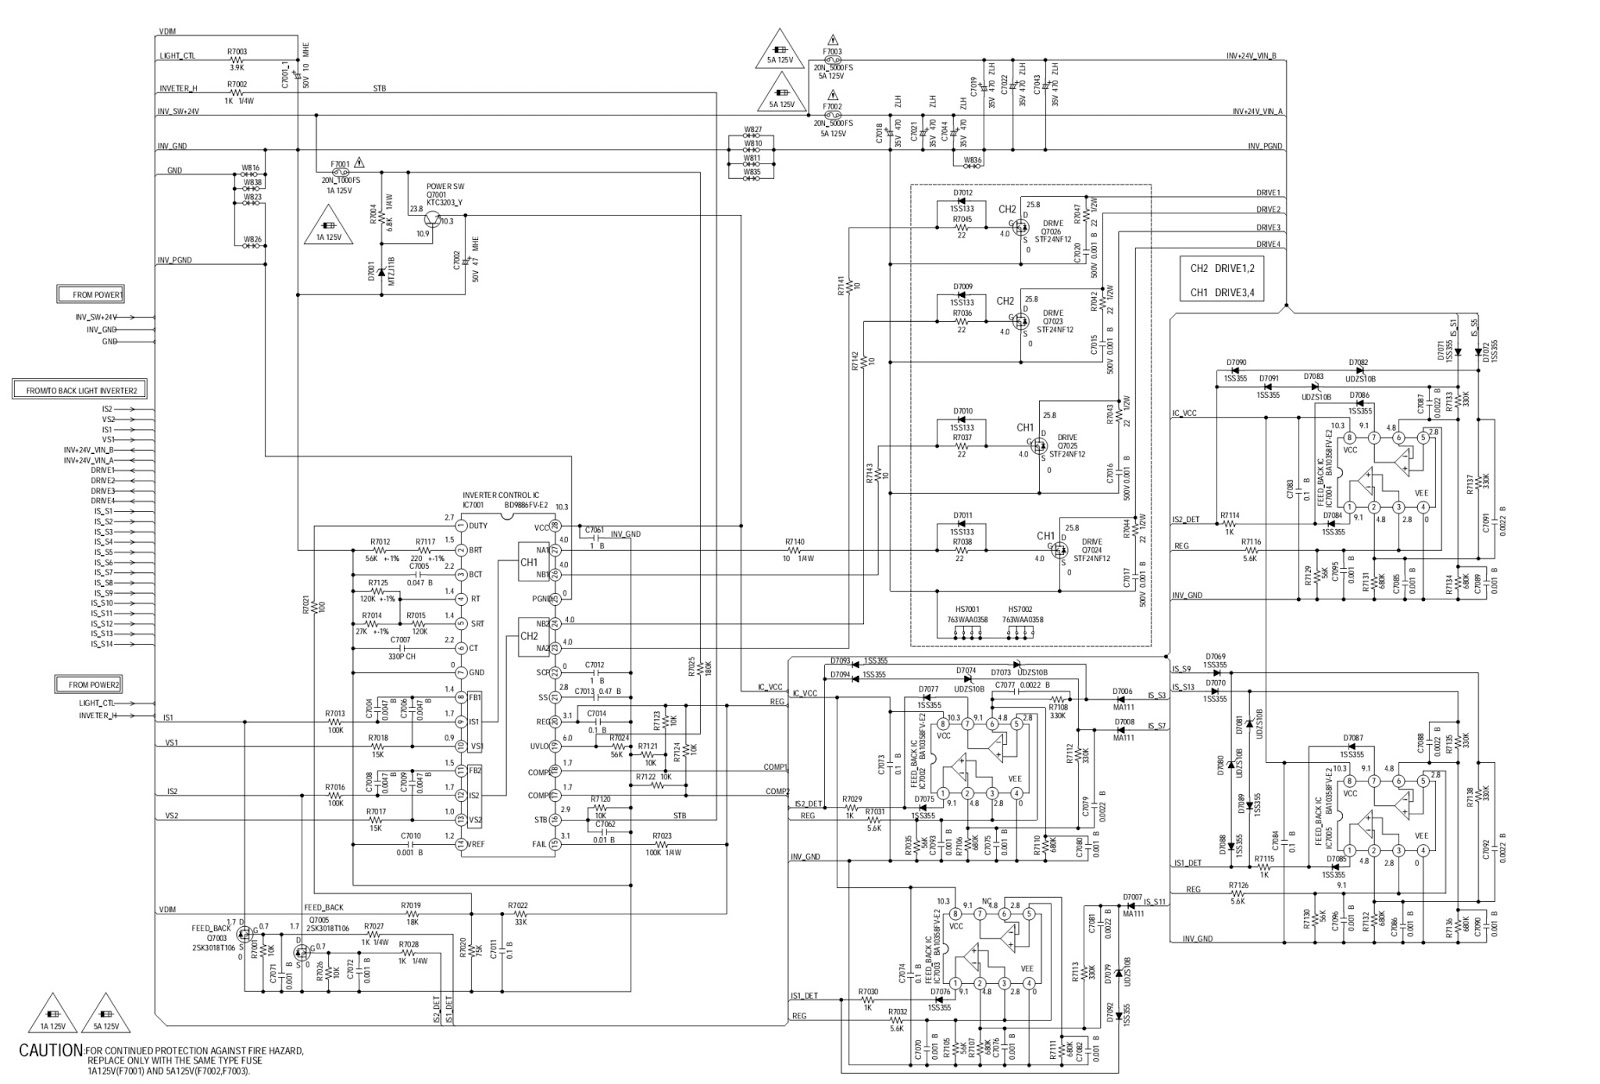 hight resolution of rv electrical wiring diagram for tv wiring diagram source rv dual battery wiring diagram rv electrical wiring diagram for tv